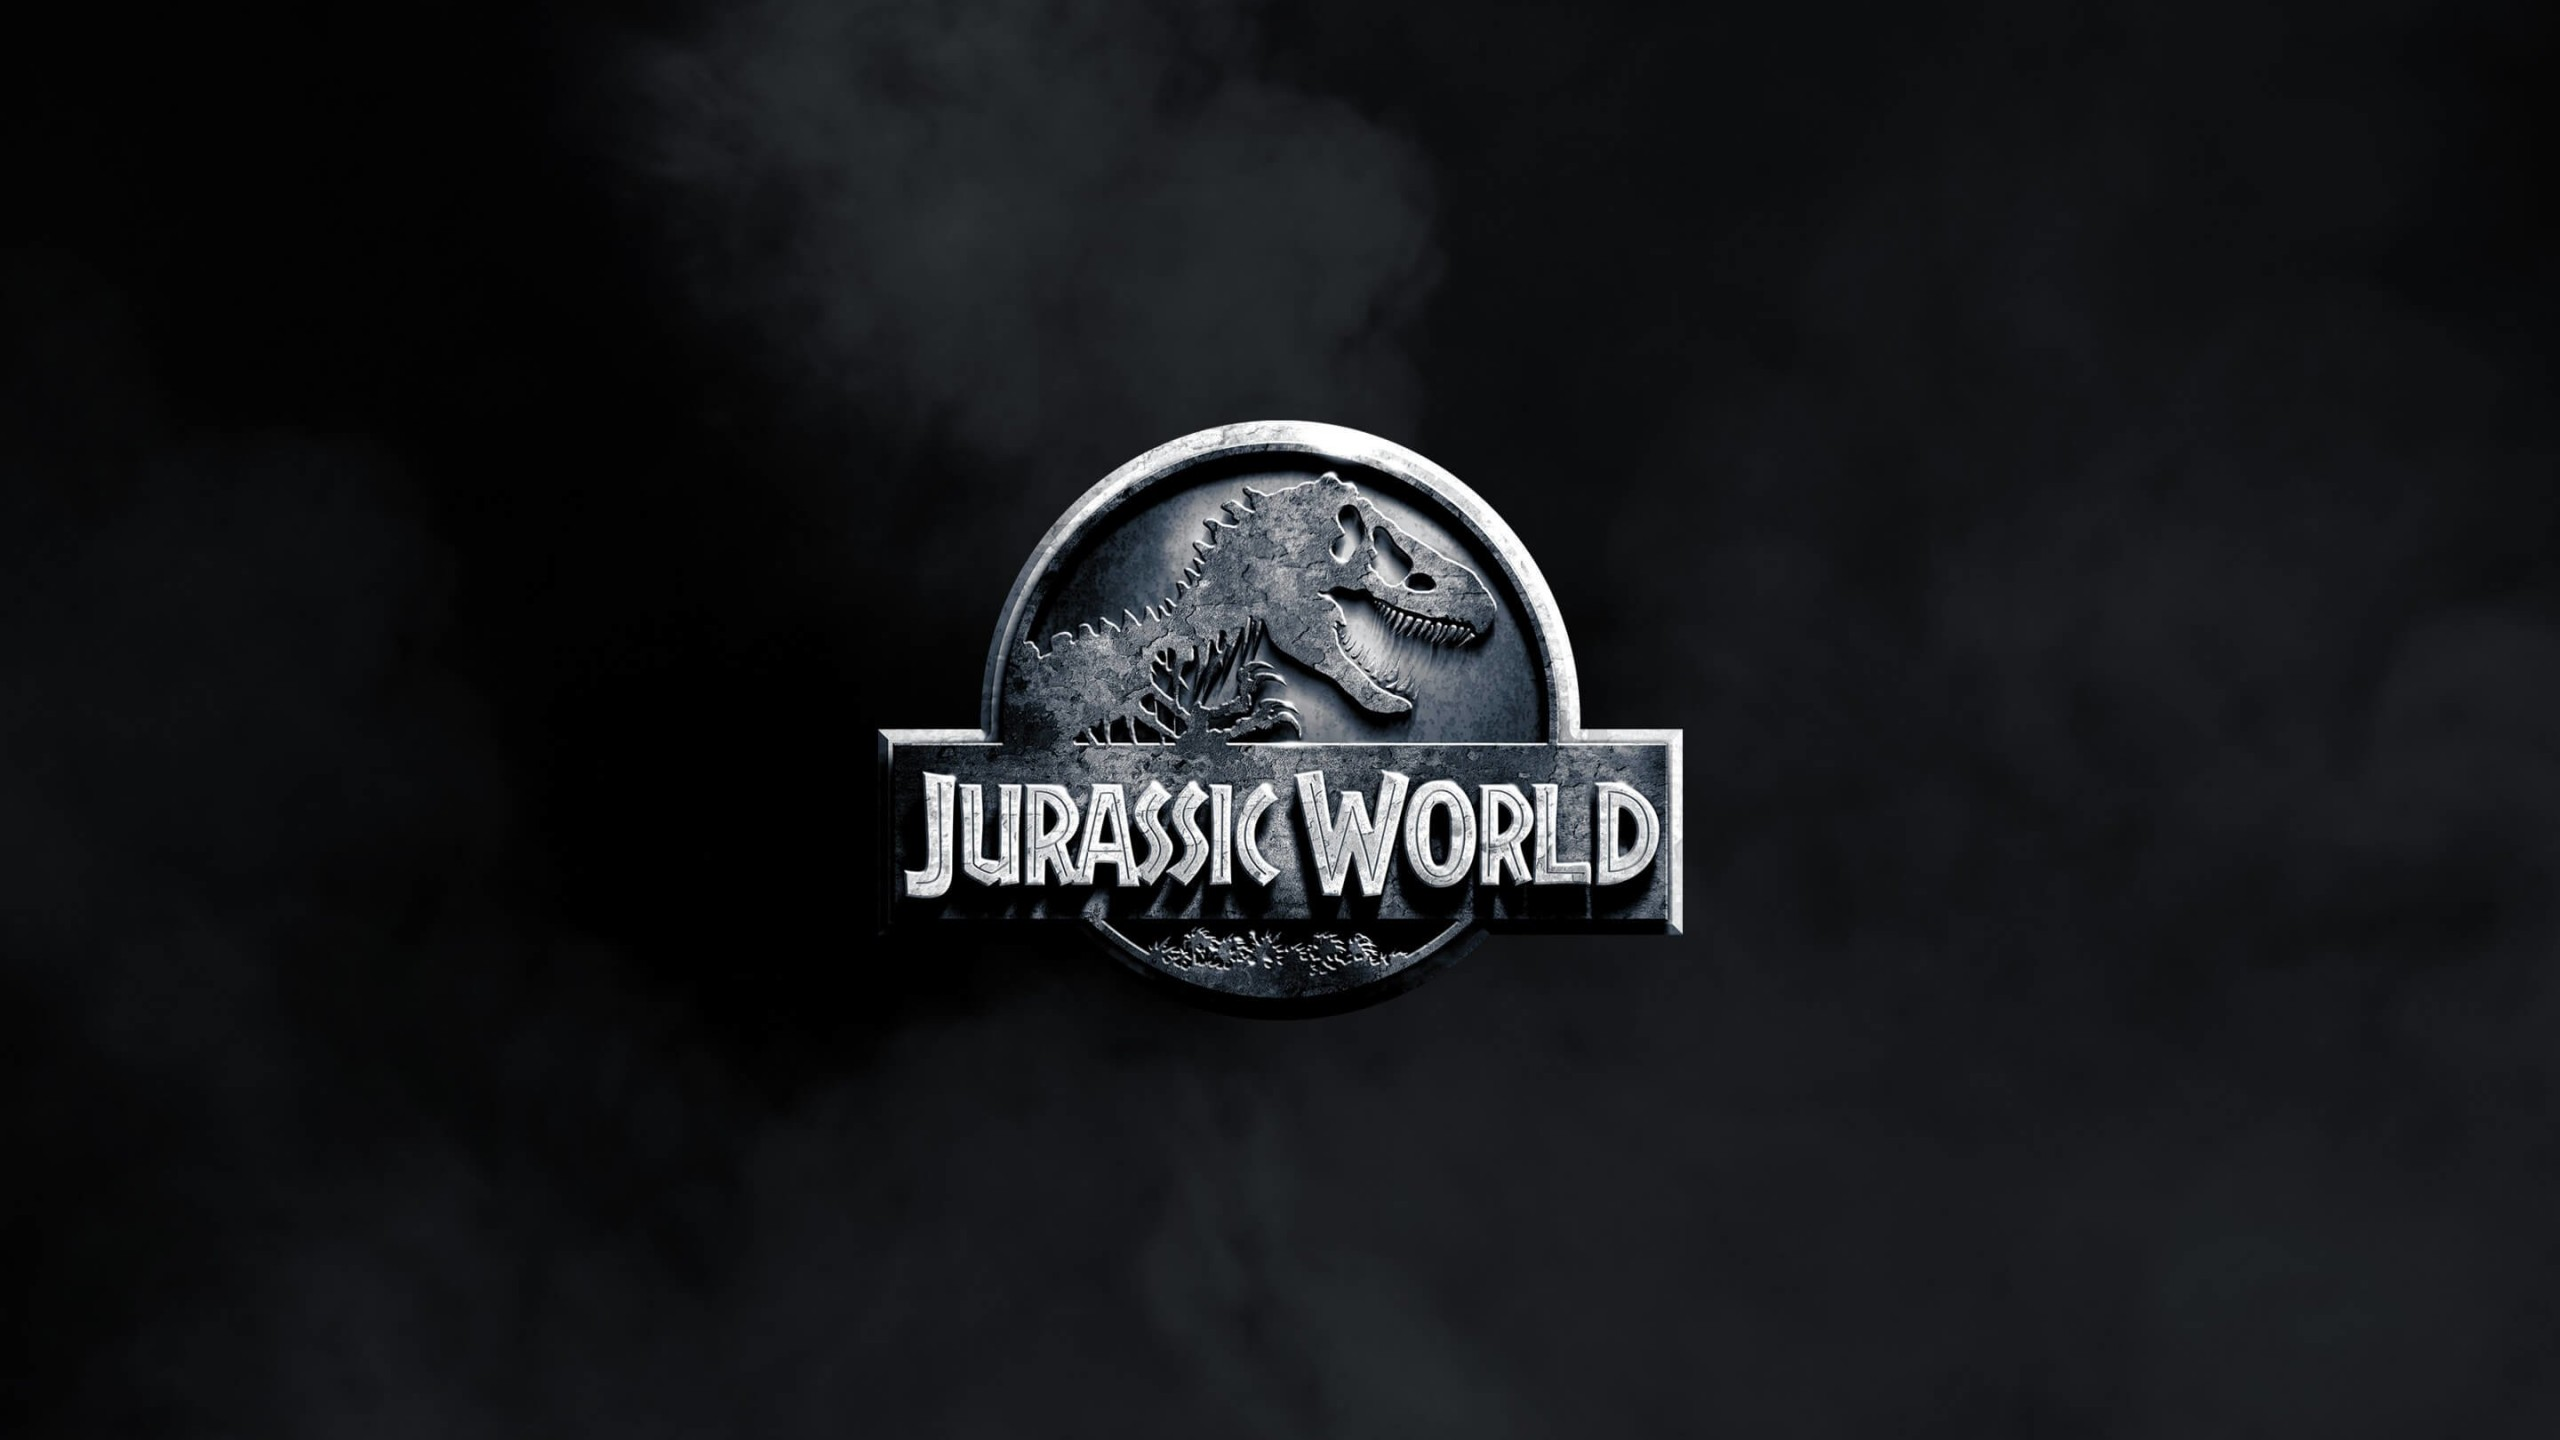 Jurassic World Wallpaper for Social Media YouTube Channel Art